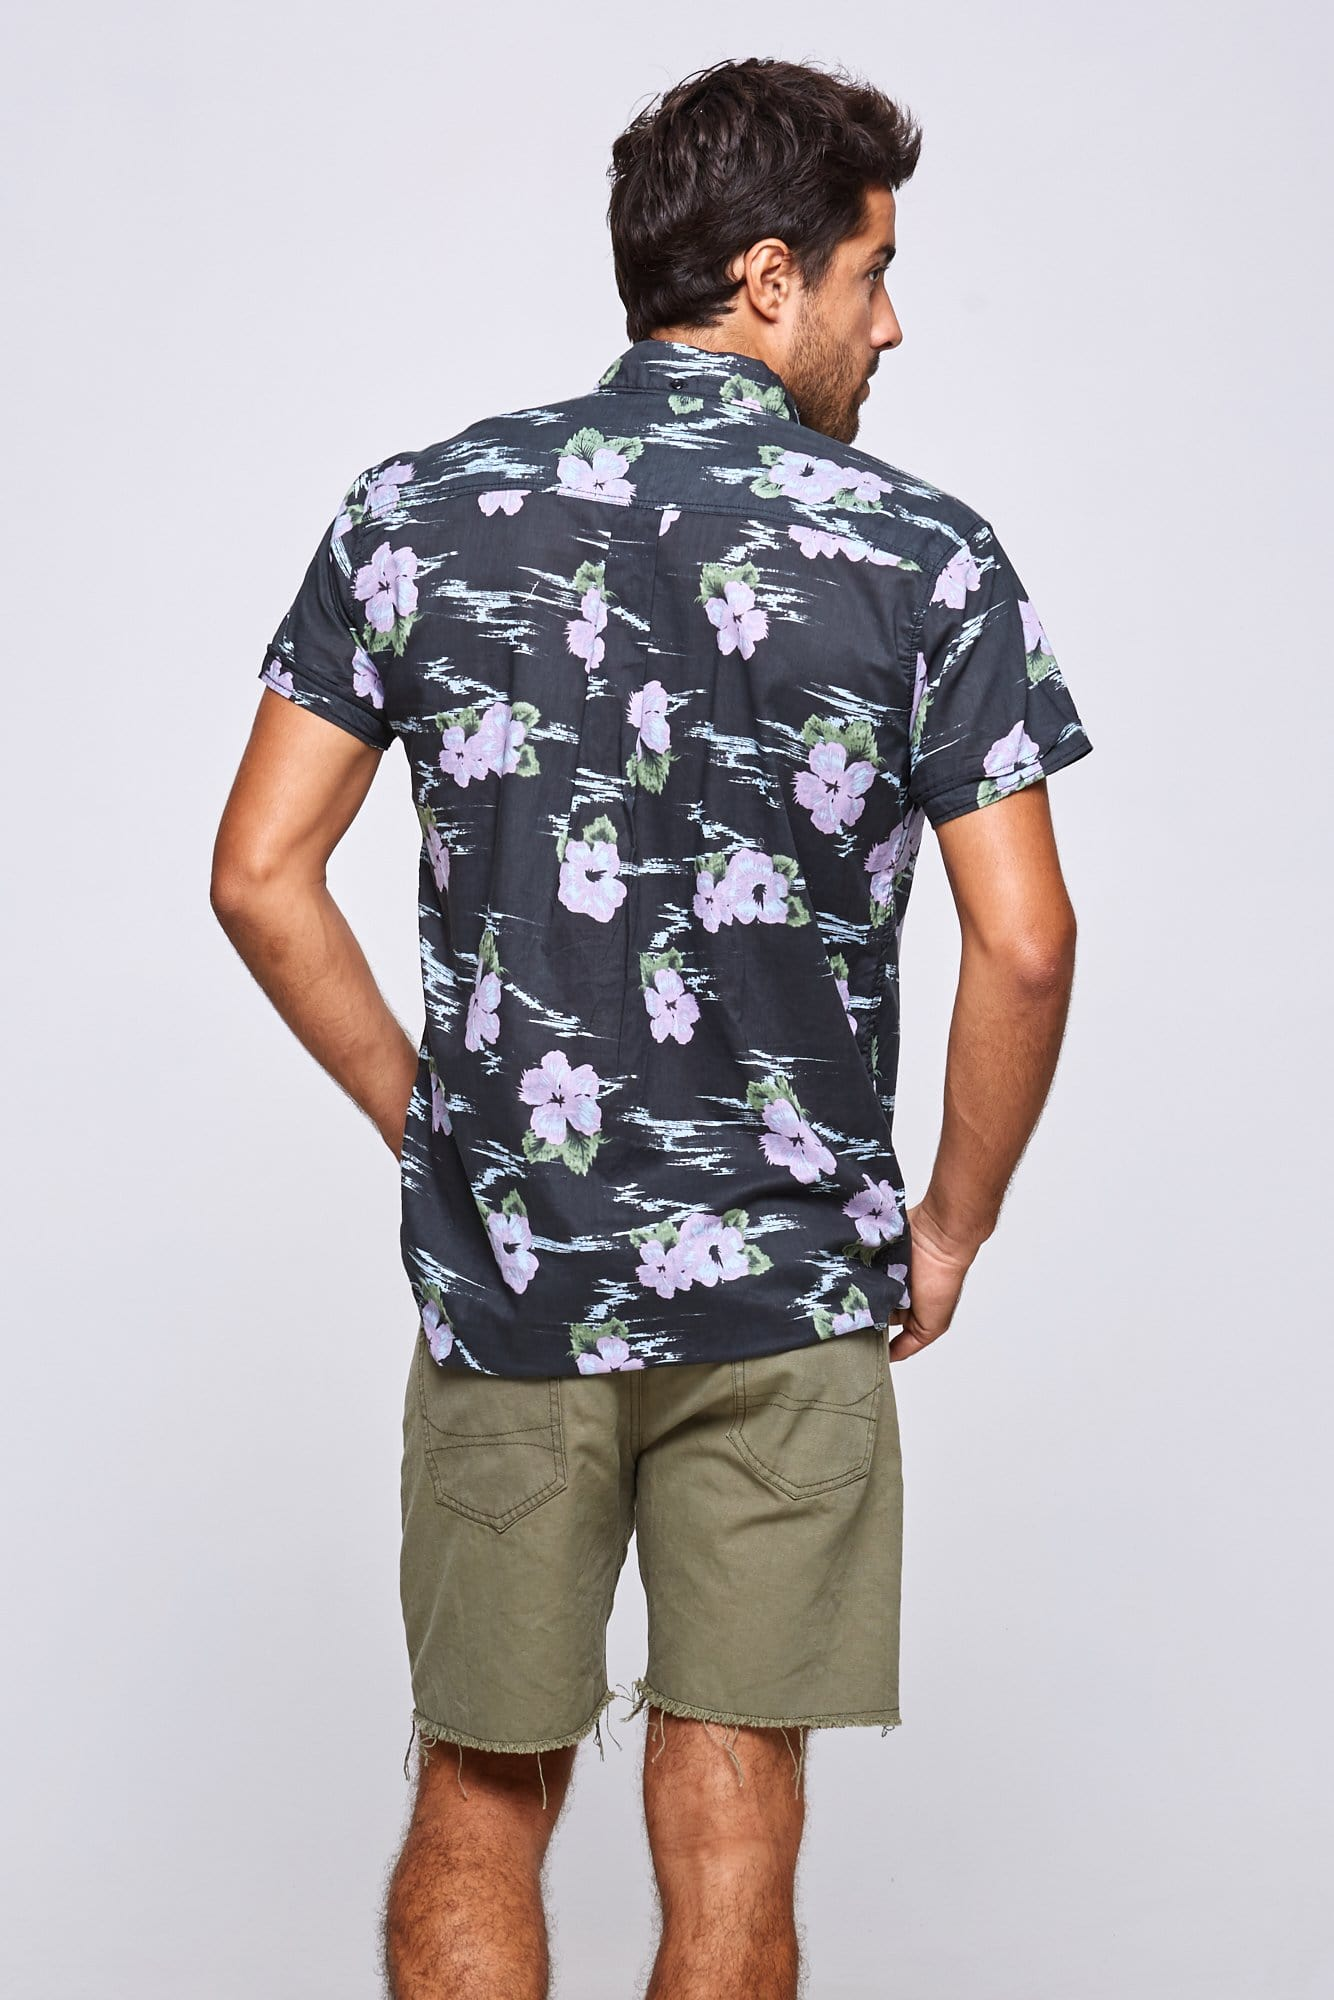 Flower Cloud Shirt - Man Shirt - LOST IN PARADISE